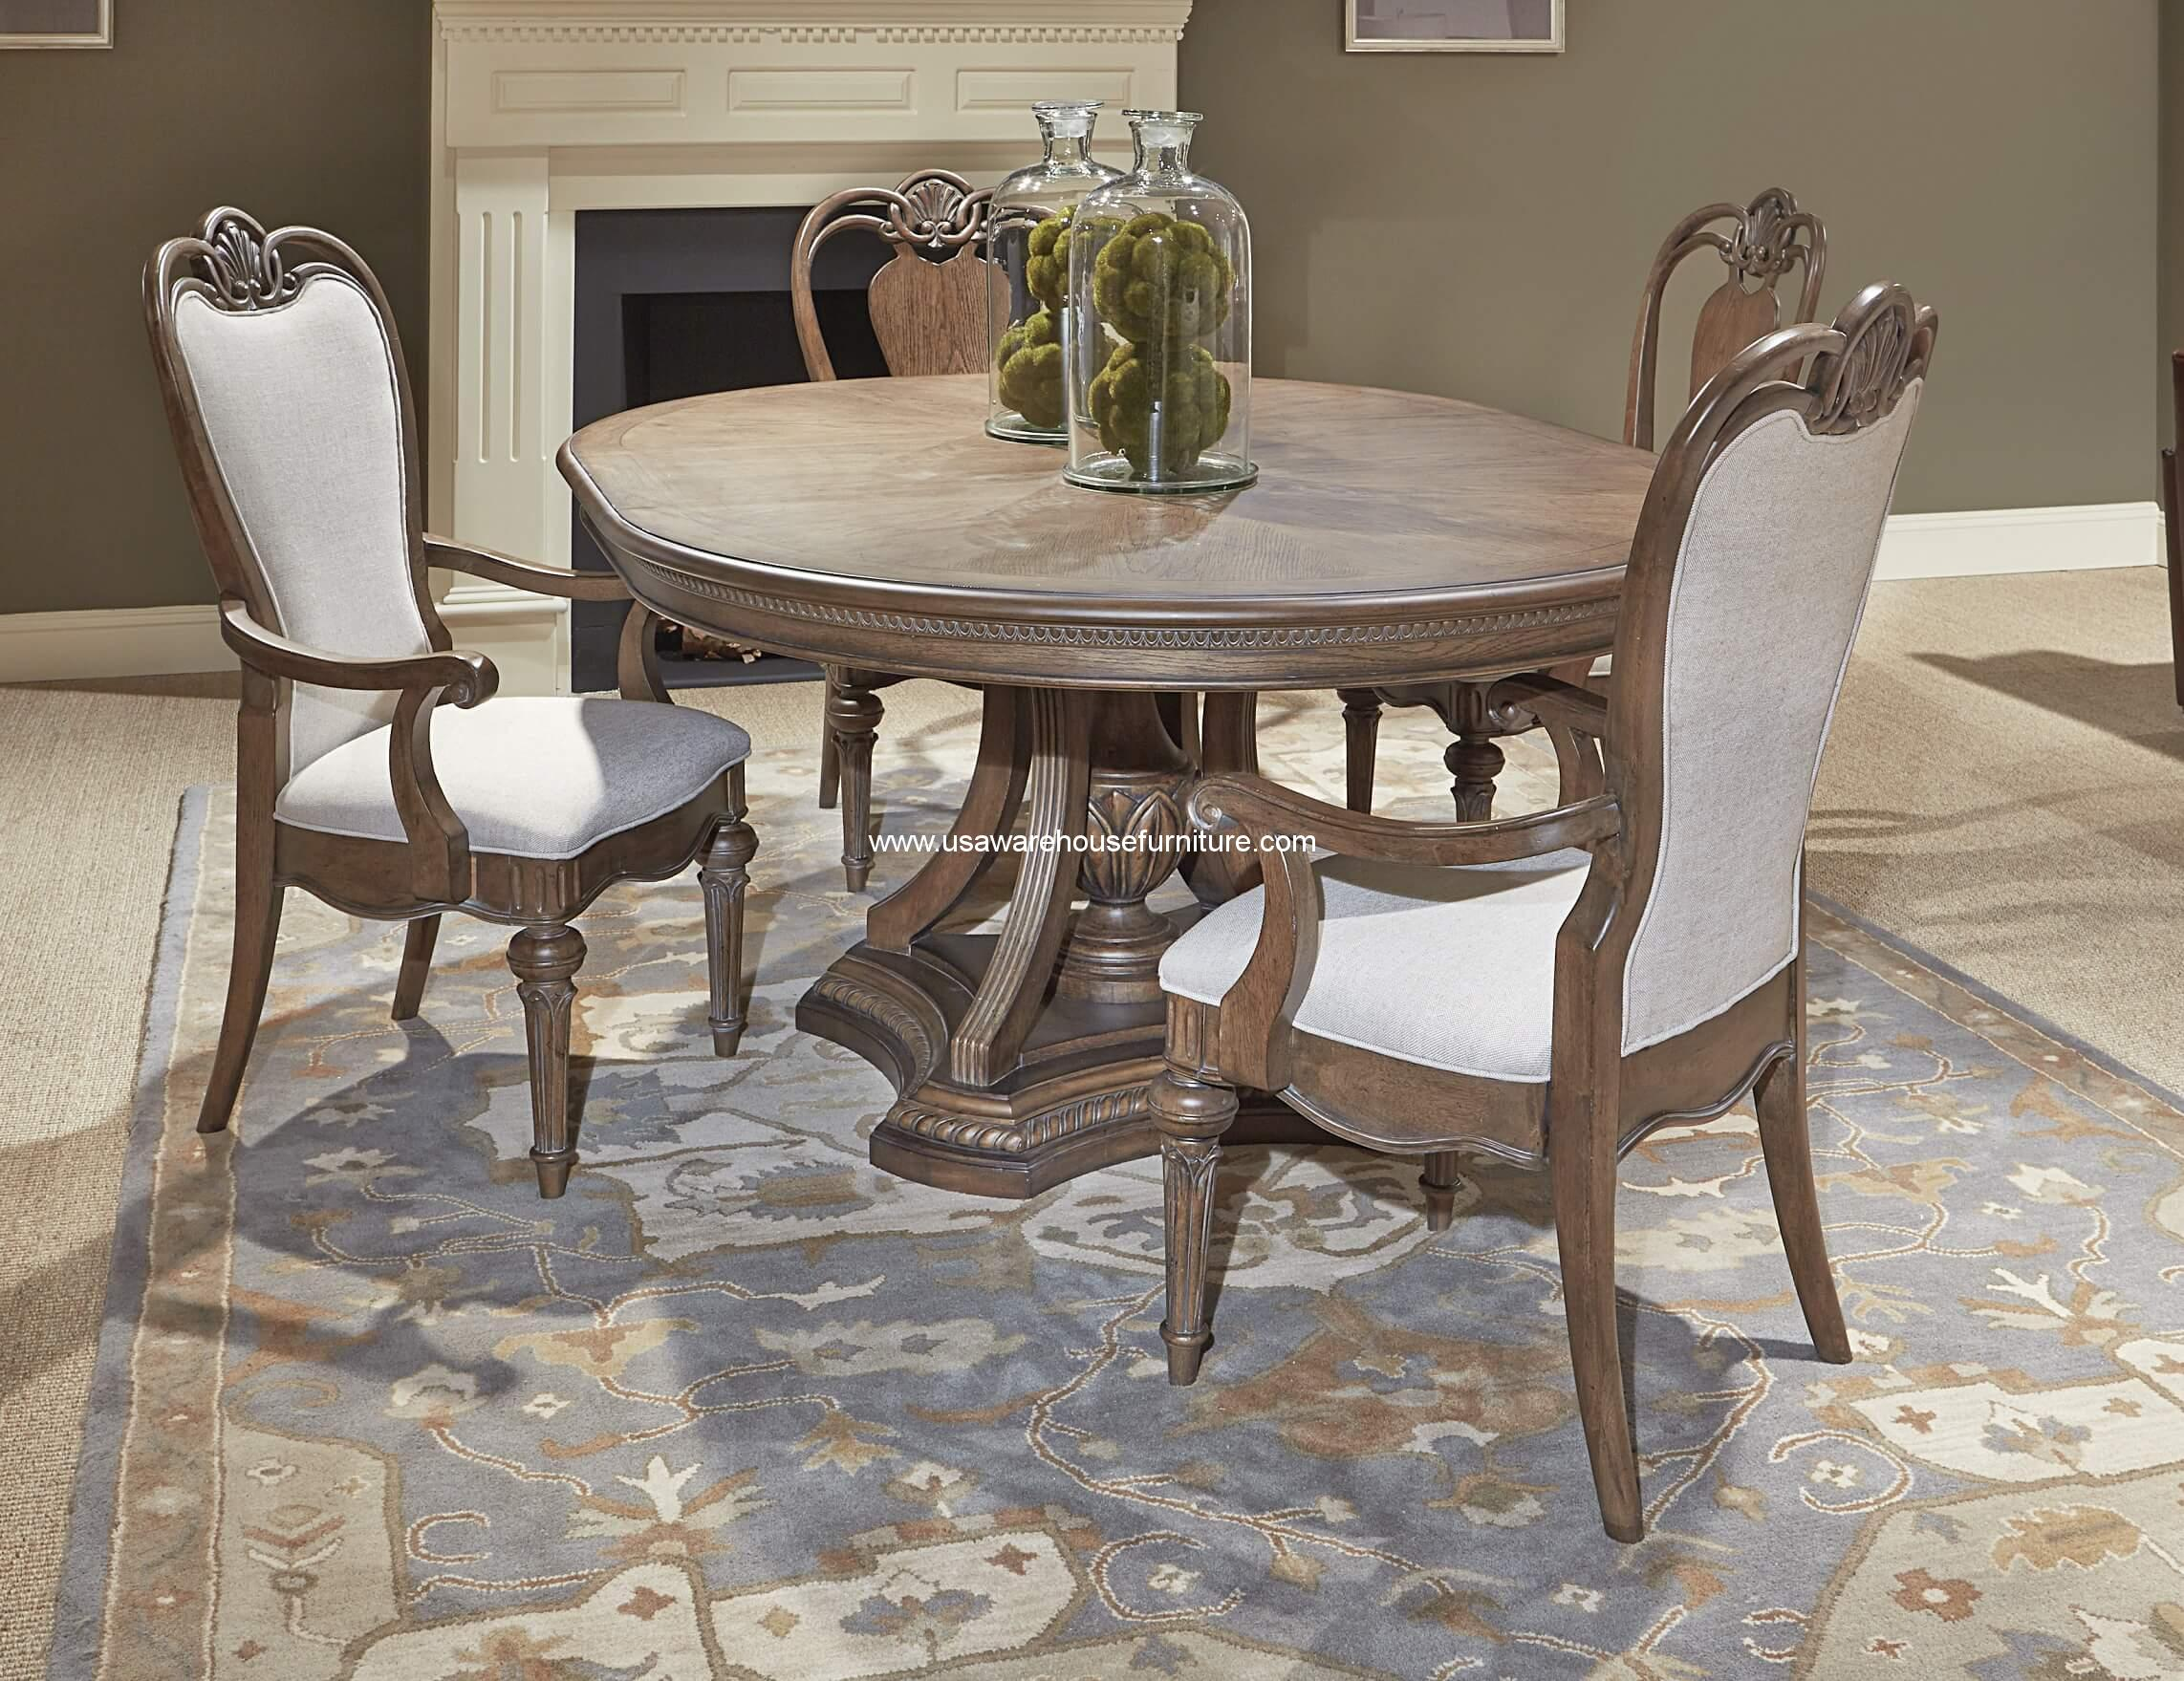 Renaissance round to oval dining set usa warehouse furniture